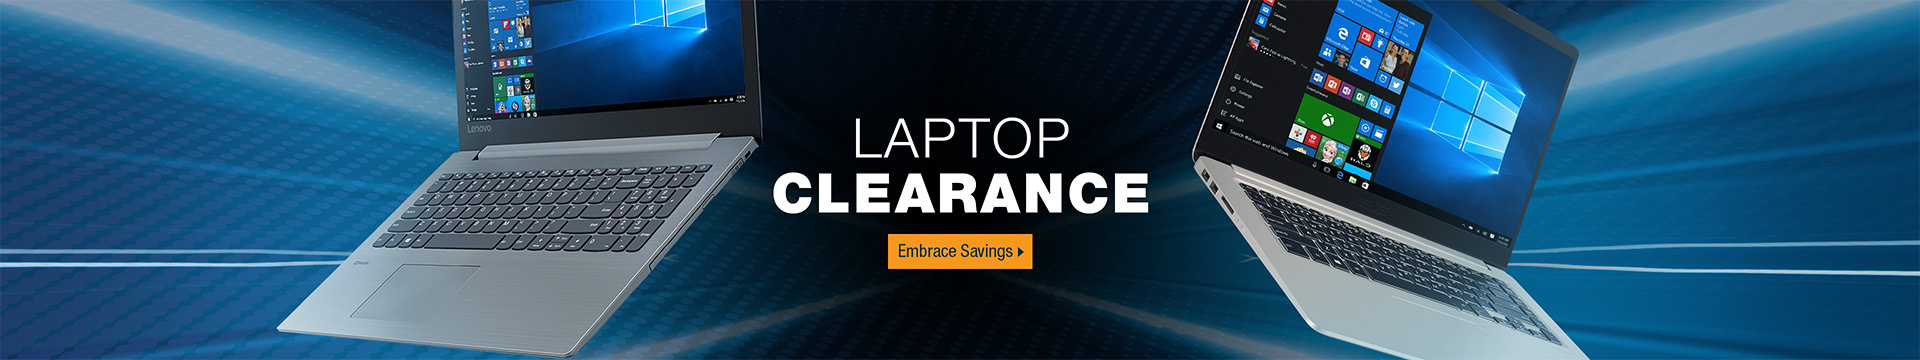 Laptop Clearance